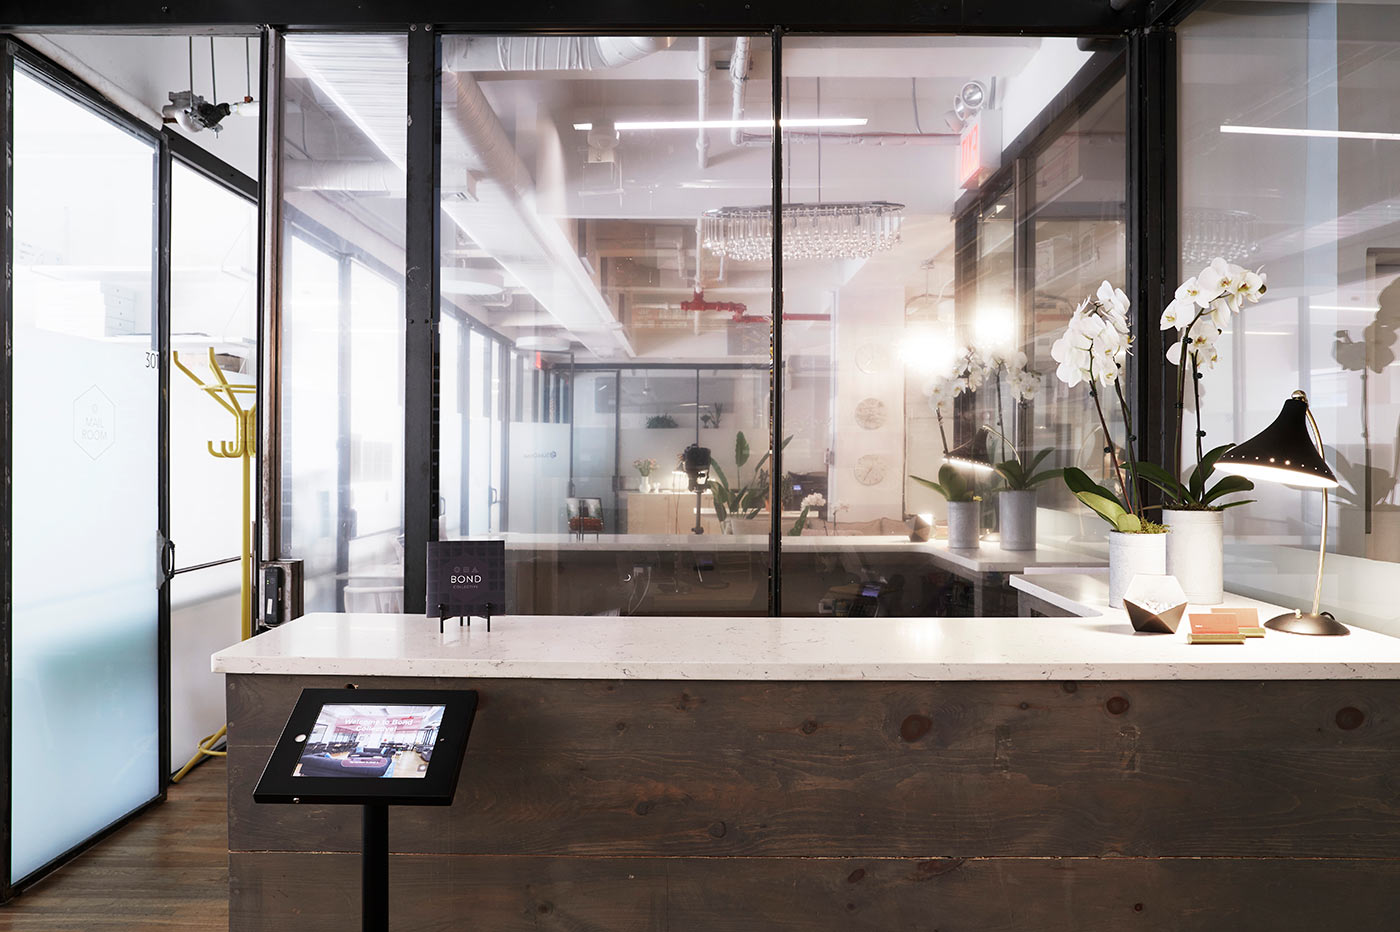 Reception area of Modern coworking space